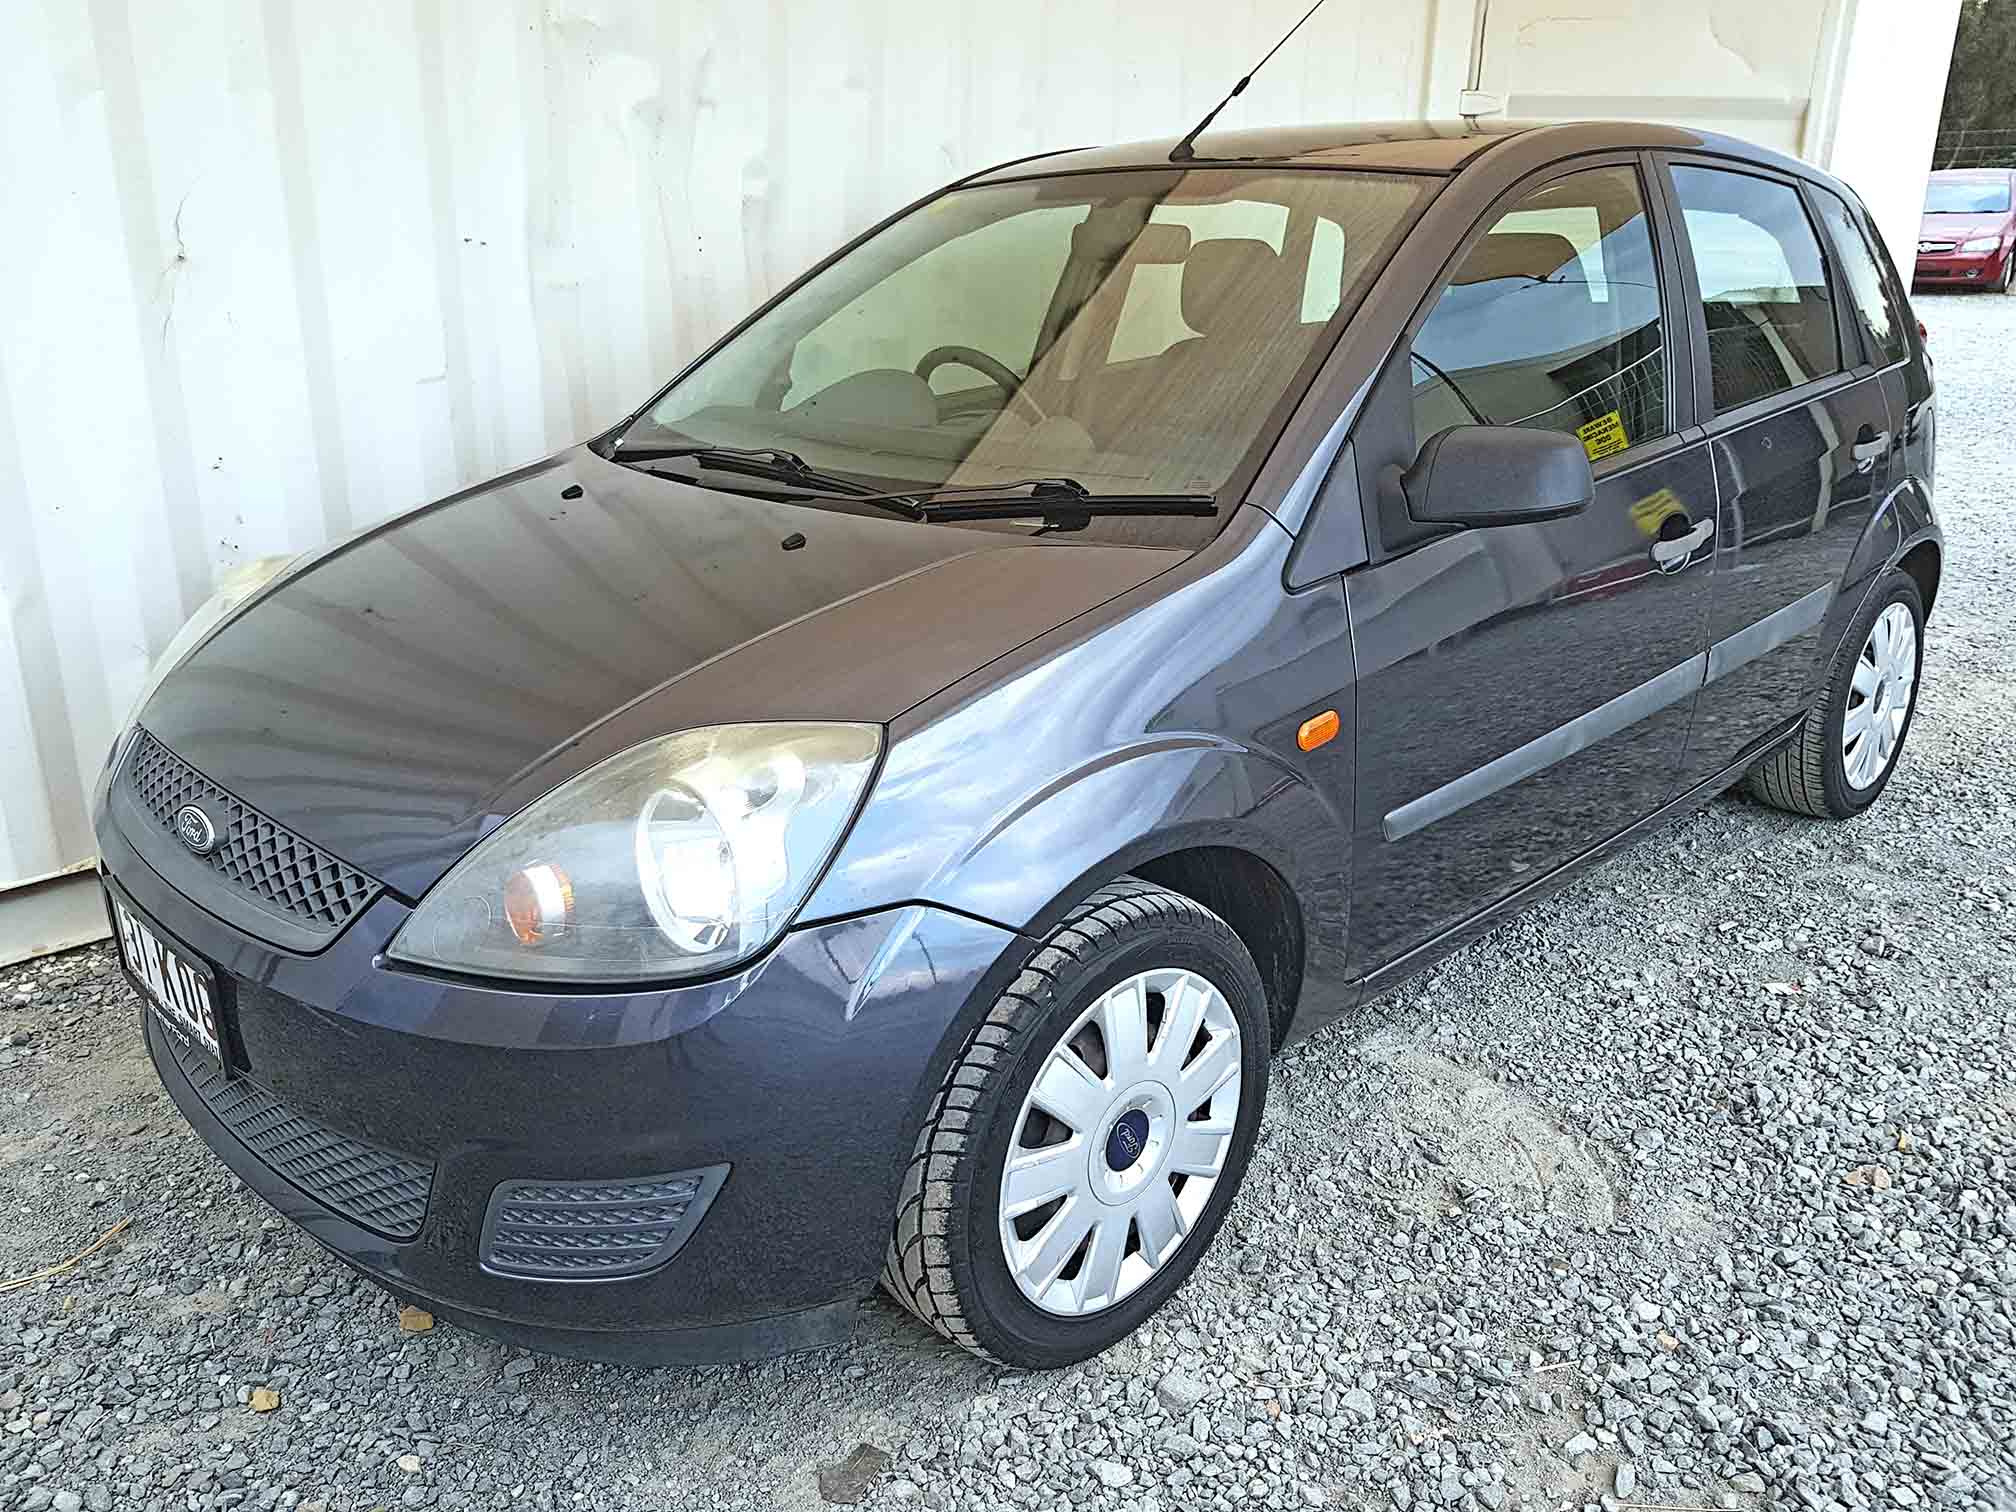 hatchback ford fiesta 2008 grey used vehicle sales. Black Bedroom Furniture Sets. Home Design Ideas